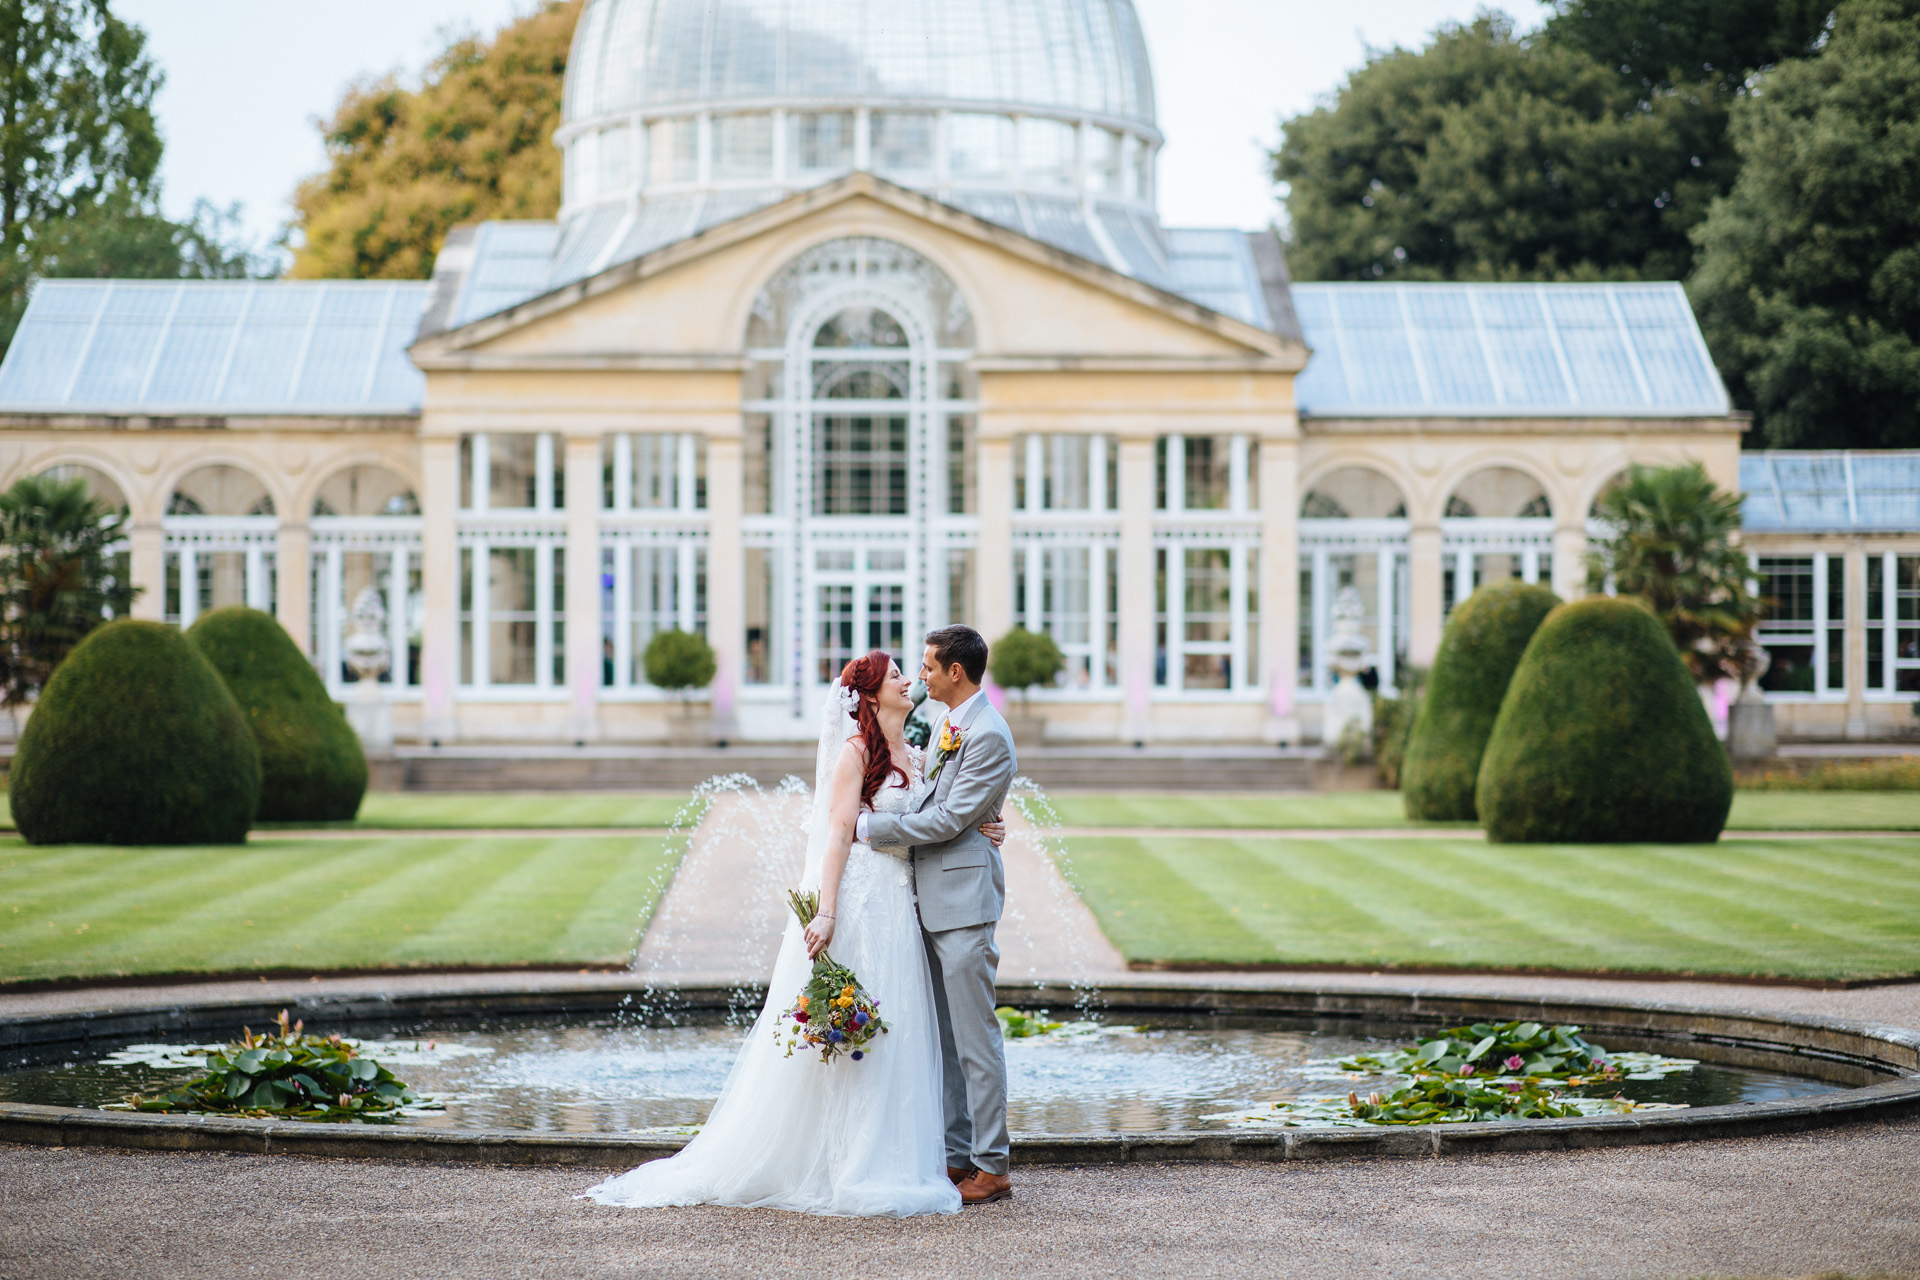 bride and groom cuddling in front of great conservatory at syon park wedding